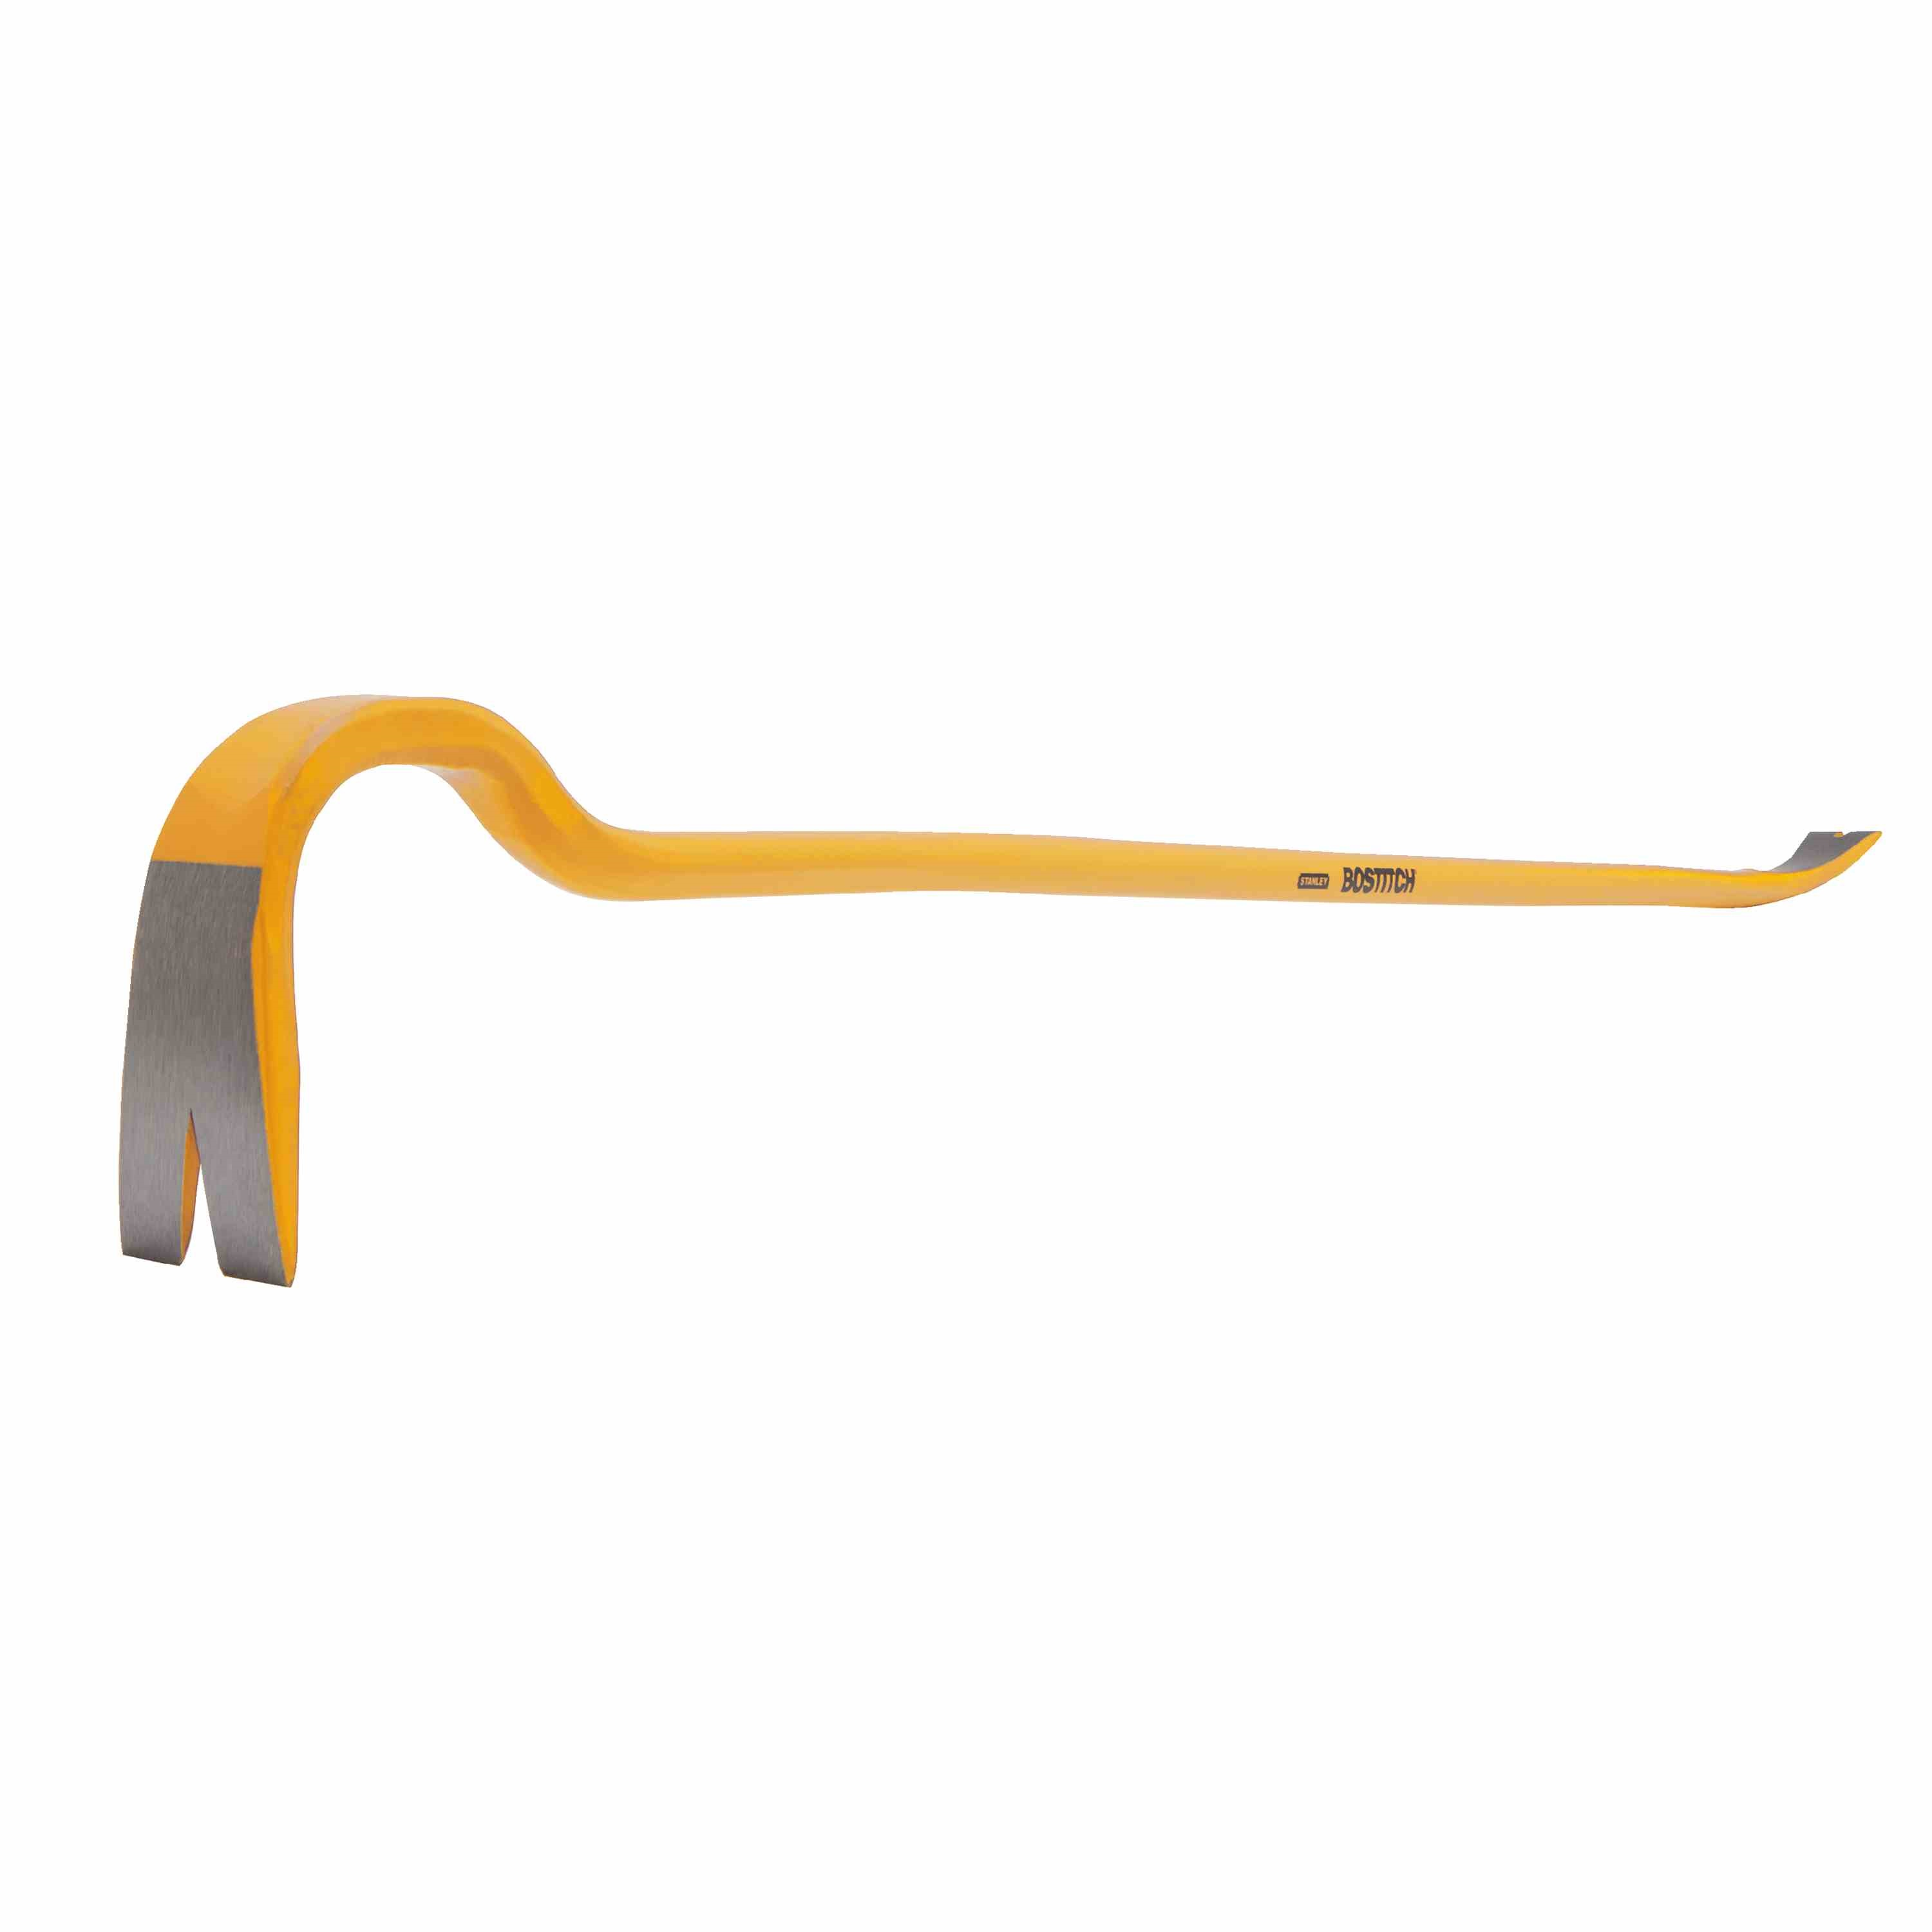 Bostitch - Spring Steel Pry Bar - BTHT55532